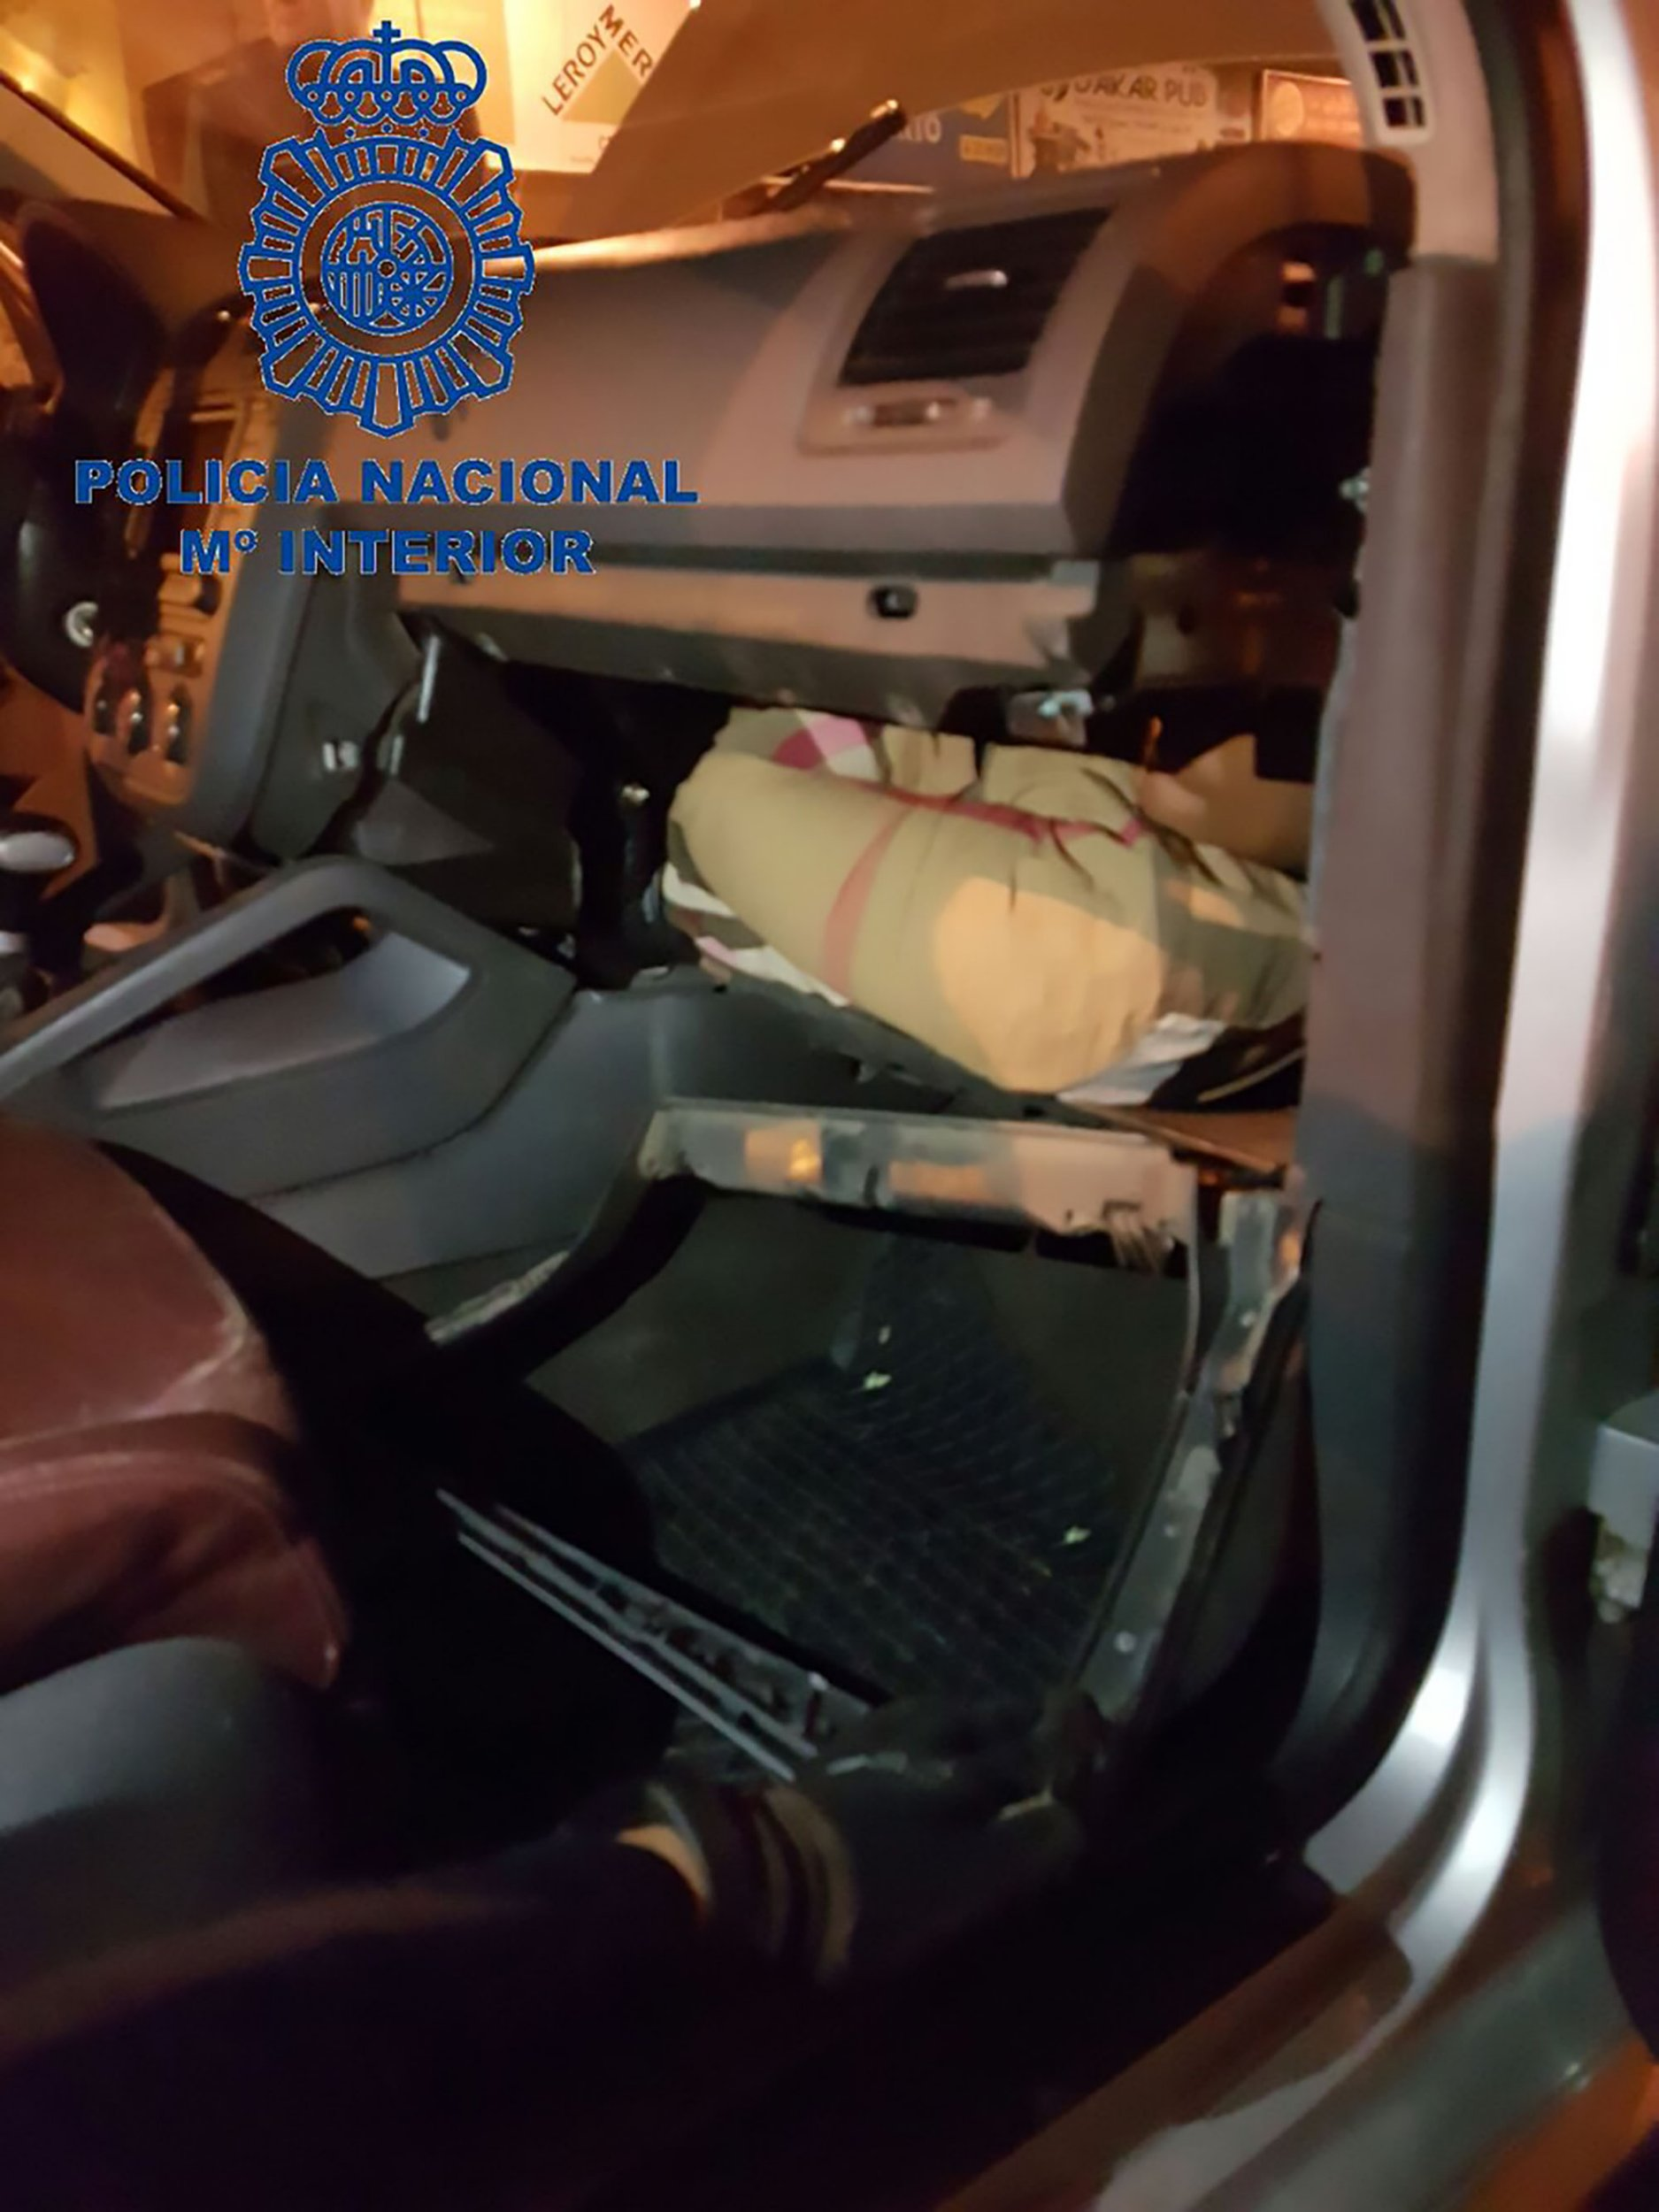 """Pics shows: Two men attempted to cross the border into the Spain's north African enclave of Ceuta on Friday night;nnBorder police were surprised to find a hidden migrant crammed inside a car¿s dashboard.nnThe driver, identified only as a 36-year-old named R.M.S, has been arrested after the bizarre find by Spanish officers which happened on the border joining Spain with north Africa in the city of Ceuta.nnTwo migrants were found inside the vehicle - a man was hiding under the seat and a woman was curled up inside the dashboard.nnThe driver is alleged to have been a Spanish national who had offered to help the desperate asylum seekers for money.nnHis vehicle was searched after officers said he was behaving """"nervously"""".nnBecause of his weird behaviour, officers decided to check the entire vehicle carefully and found some evidence that the seat and the front part of the vehicle had been """"manipulated"""".nnThey searched the glove box of the vehicle and found the woman who they say had clear symptoms of suffocation and had fainted.nnA man was also hidden under the back seat of the car.nnOfficers say the unnamed migrants are both of Guinean origin and are between 18 and 20 years old.nnThe driver has been arrested and charged.nnThe case continues."""